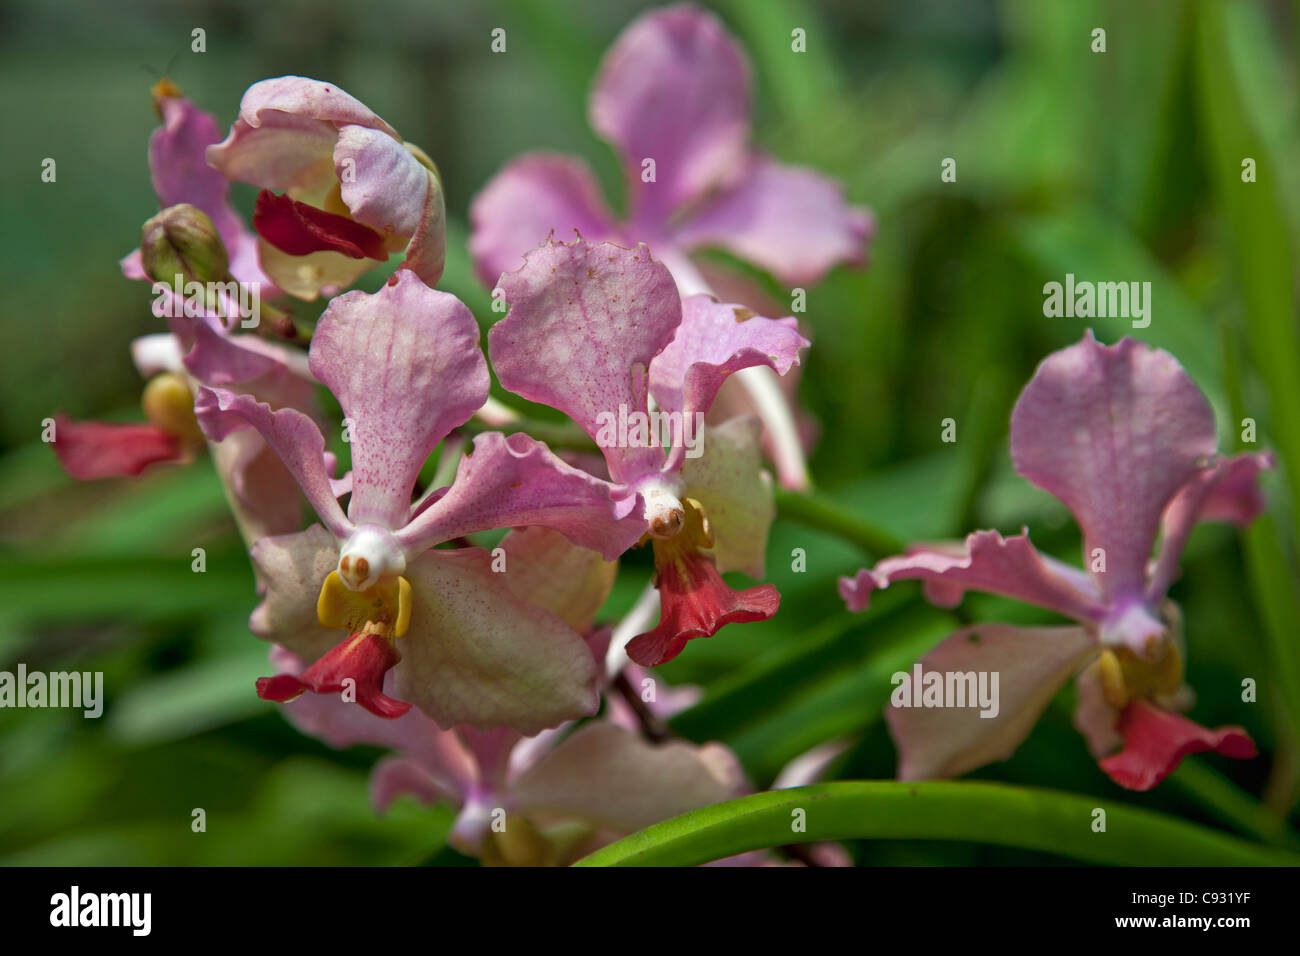 A beautiful orchid of the Vanda species. - Stock Image